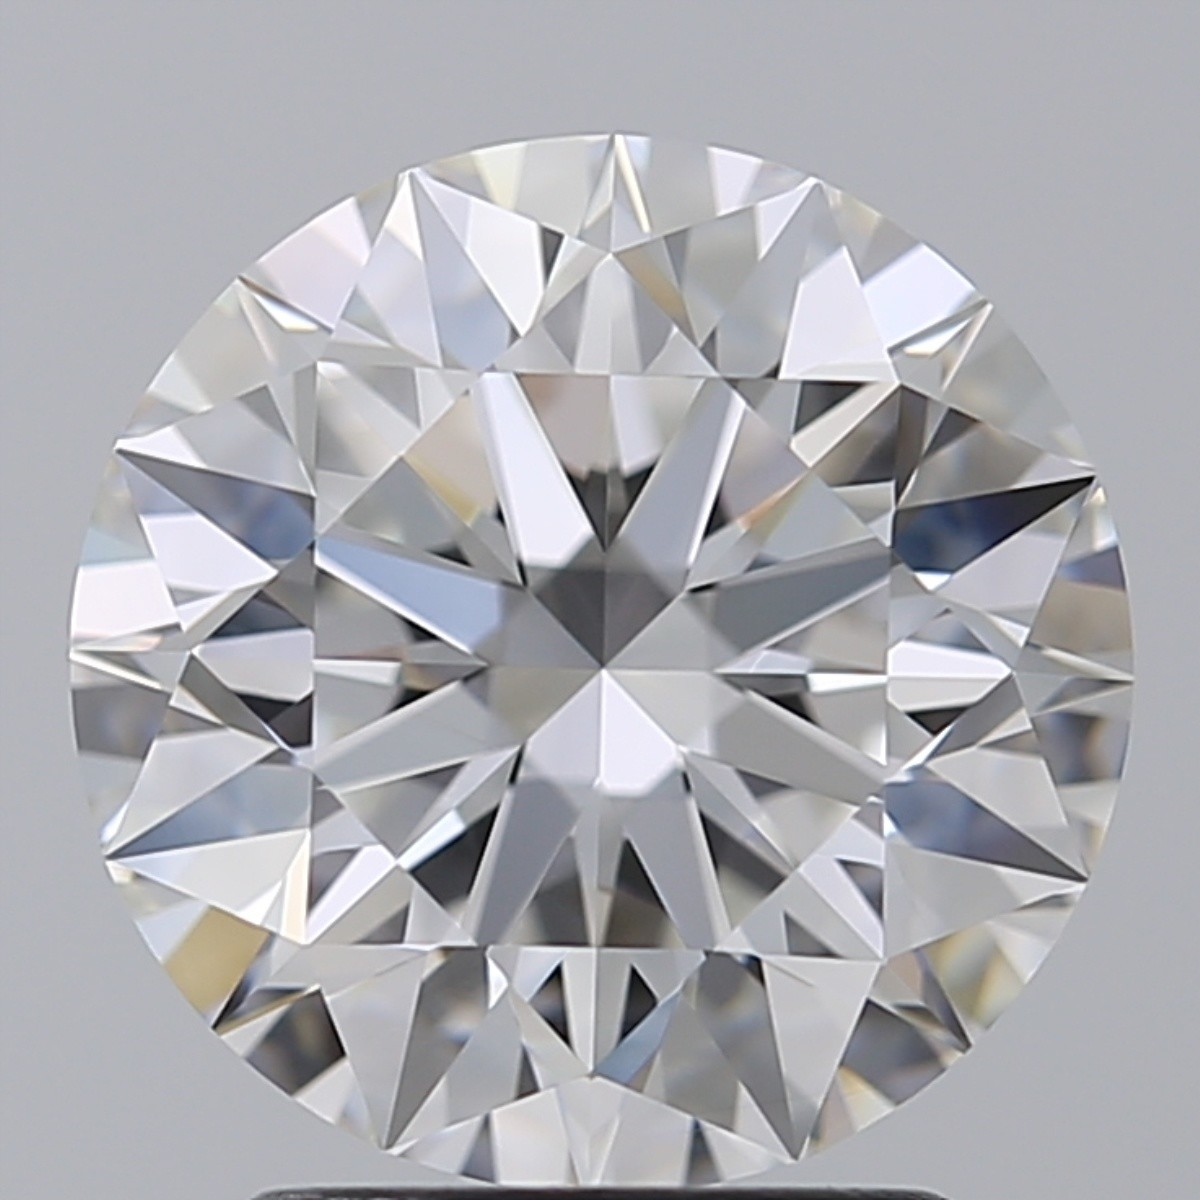 2.56 Carat Round Brilliant Diamond (E/VVS1)